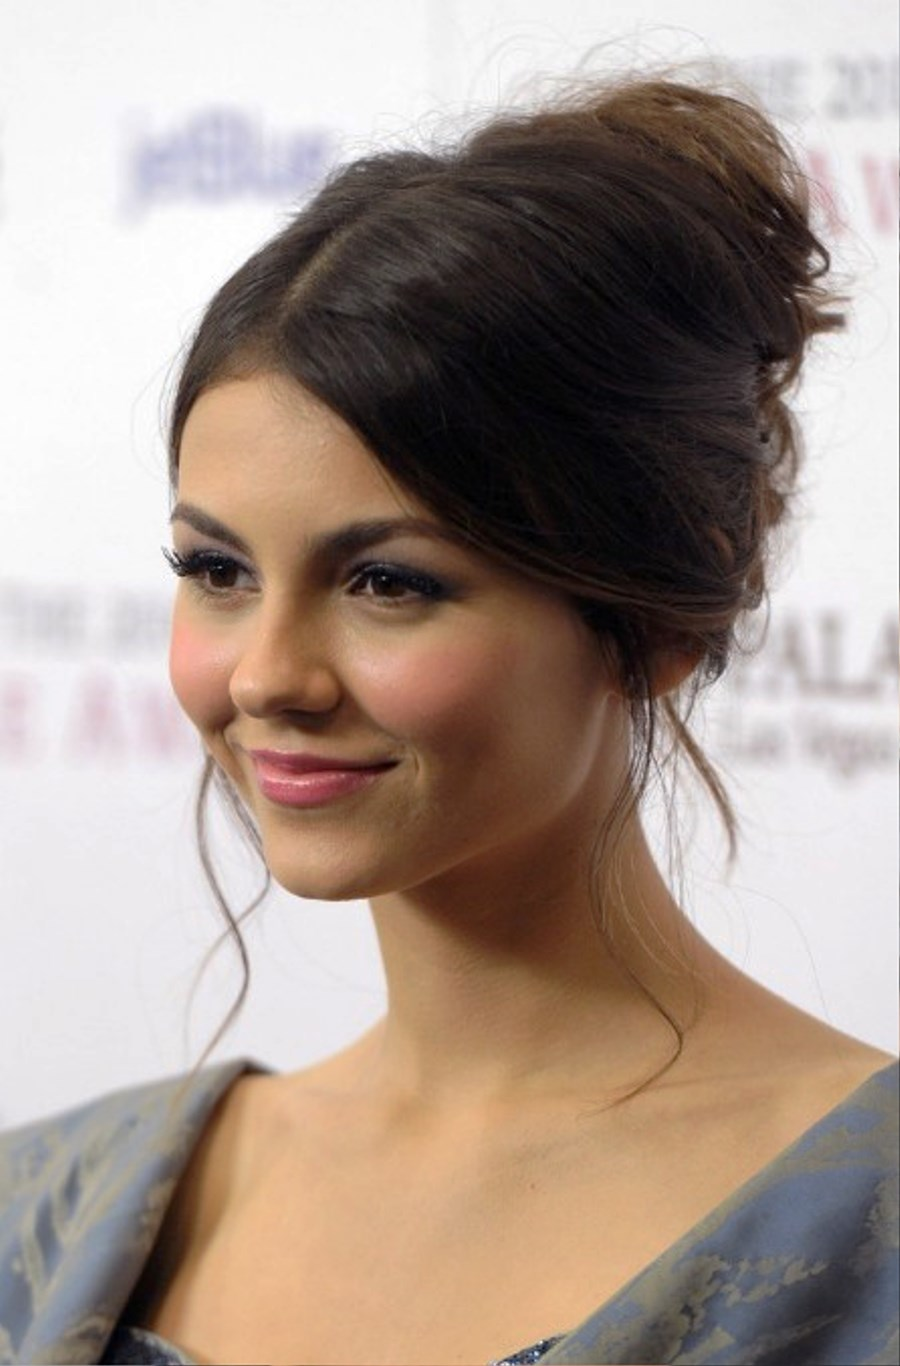 Pictures Of Victoria Justice Cute French Twist Updo Hairstyle